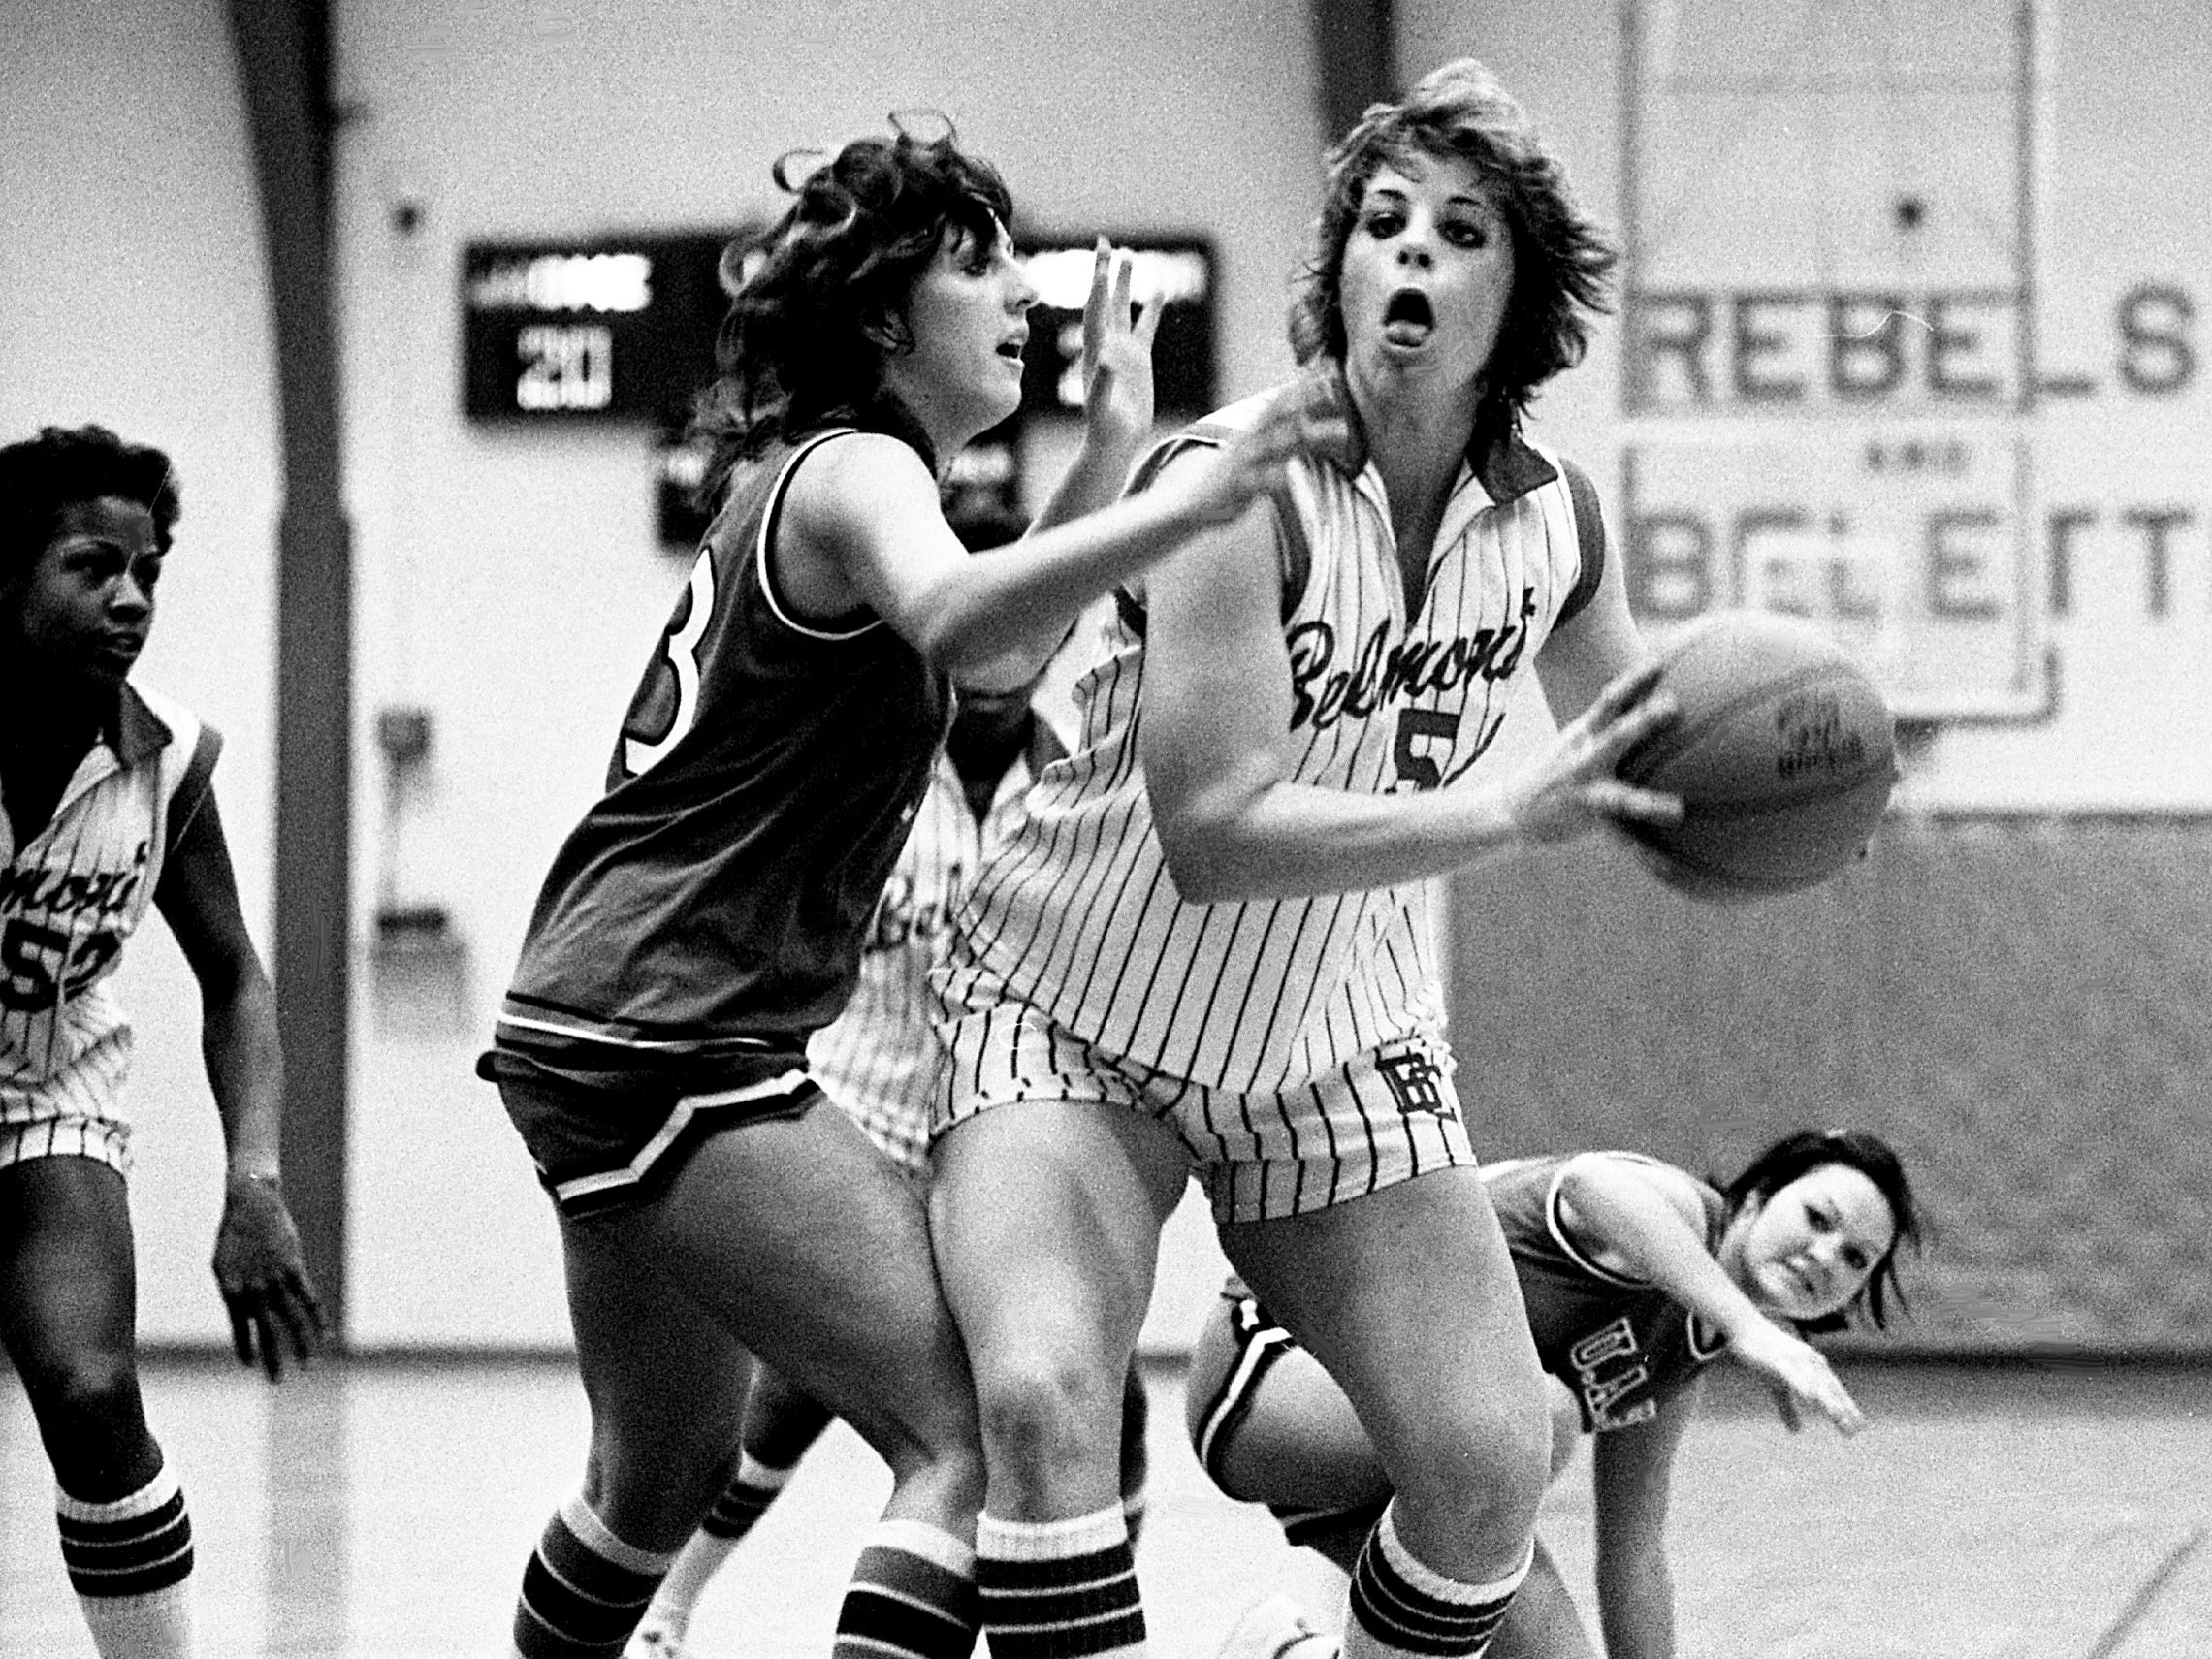 Belmont College center Cindy Morris, center, looks for an opening as two Alabama-Huntsville defenders apply pressure during the Rebelettes 71-59 victory at home Jan. 13, 1979. Morris, a sophomore, scored 30 points and pulled down 17 rebounds.